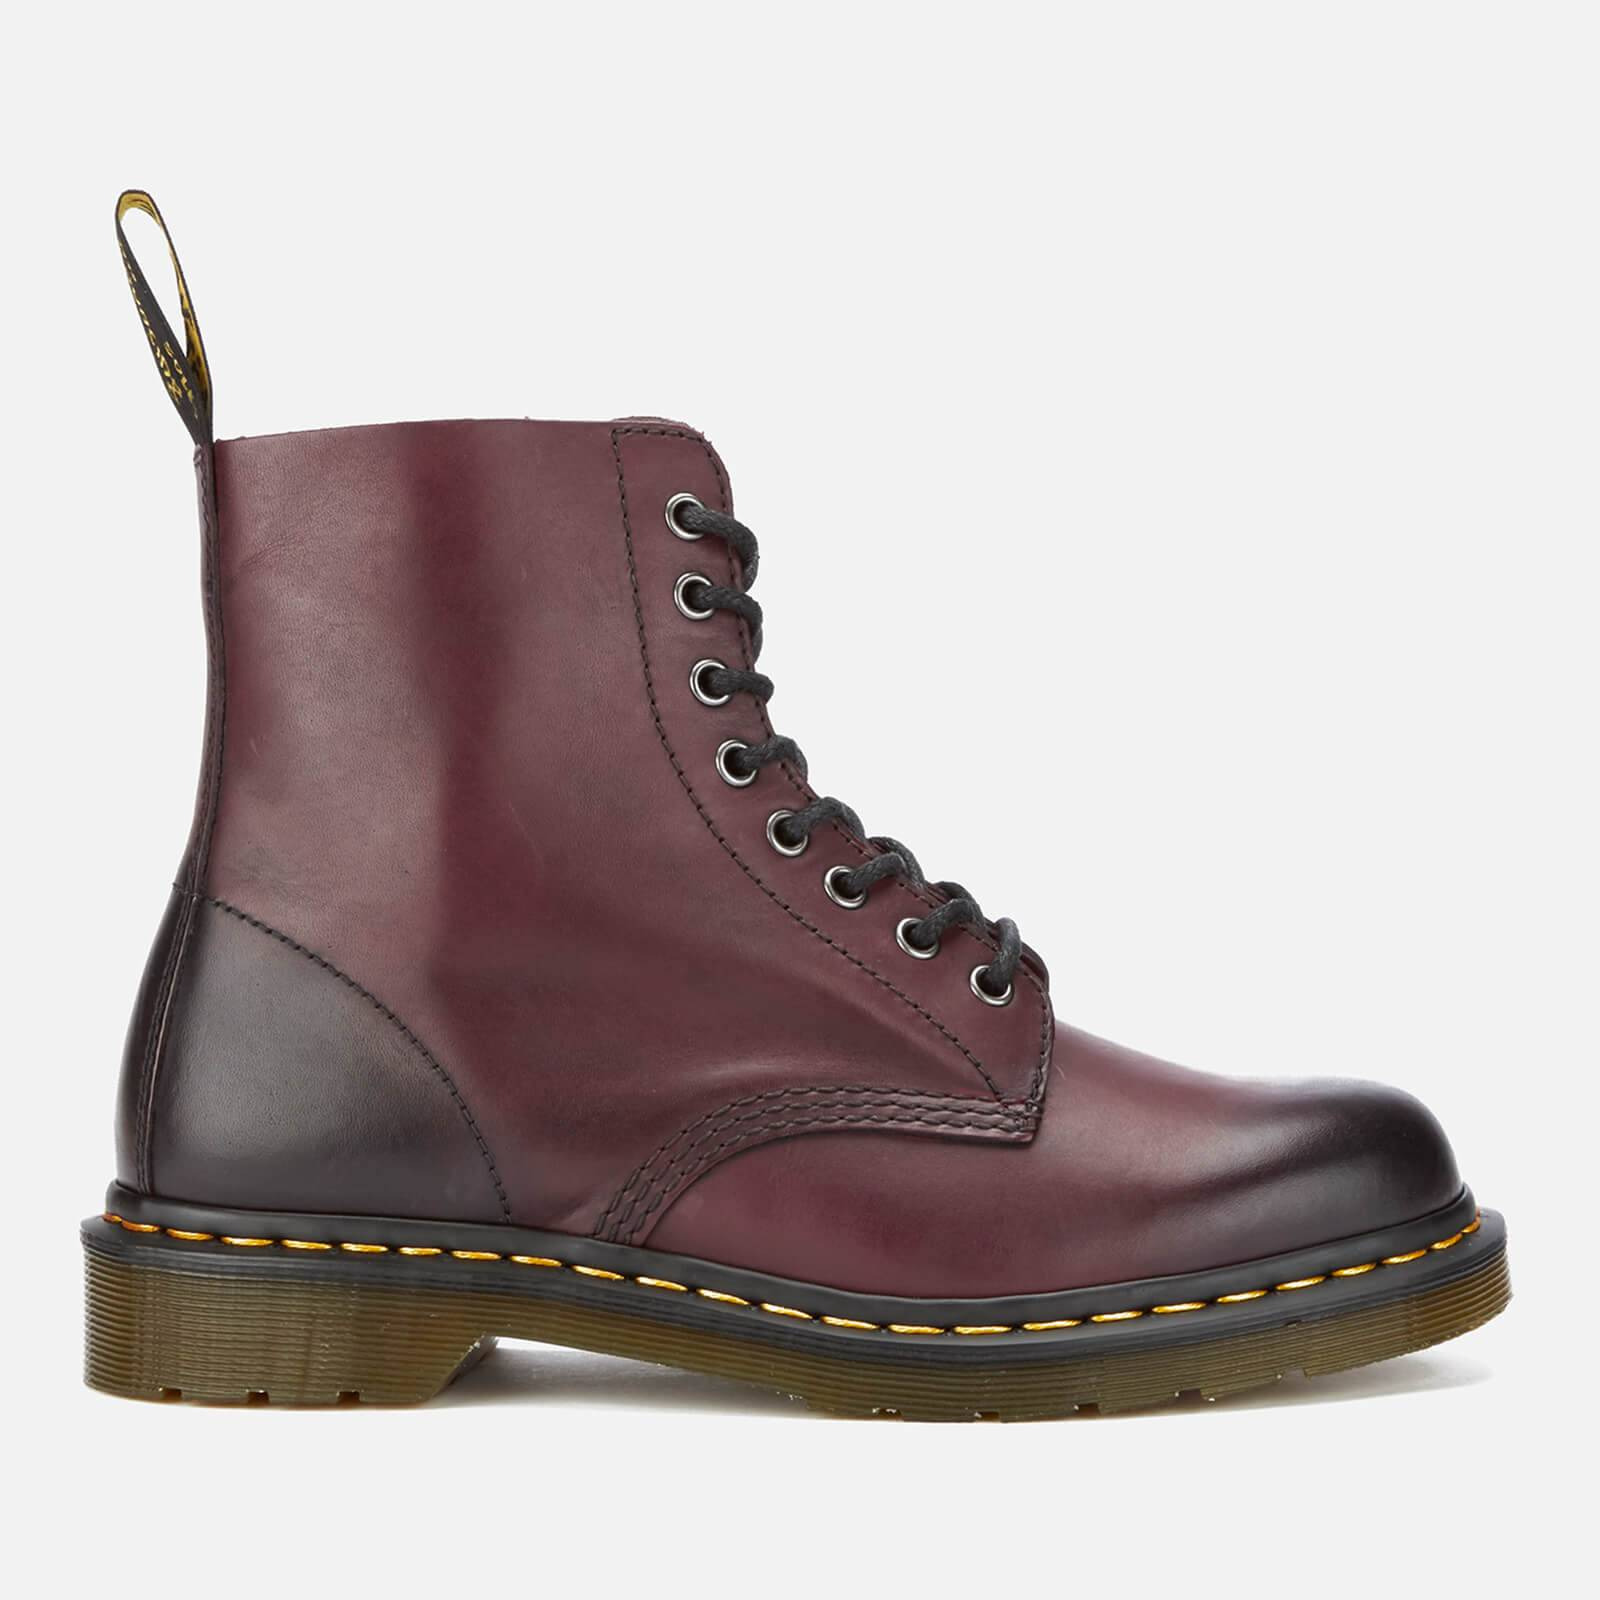 Dr. Martens Men's 1460 Pascal Antique Temperley Leather 8-Eye Boots - Cherry Red - UK 9 - Burgundy